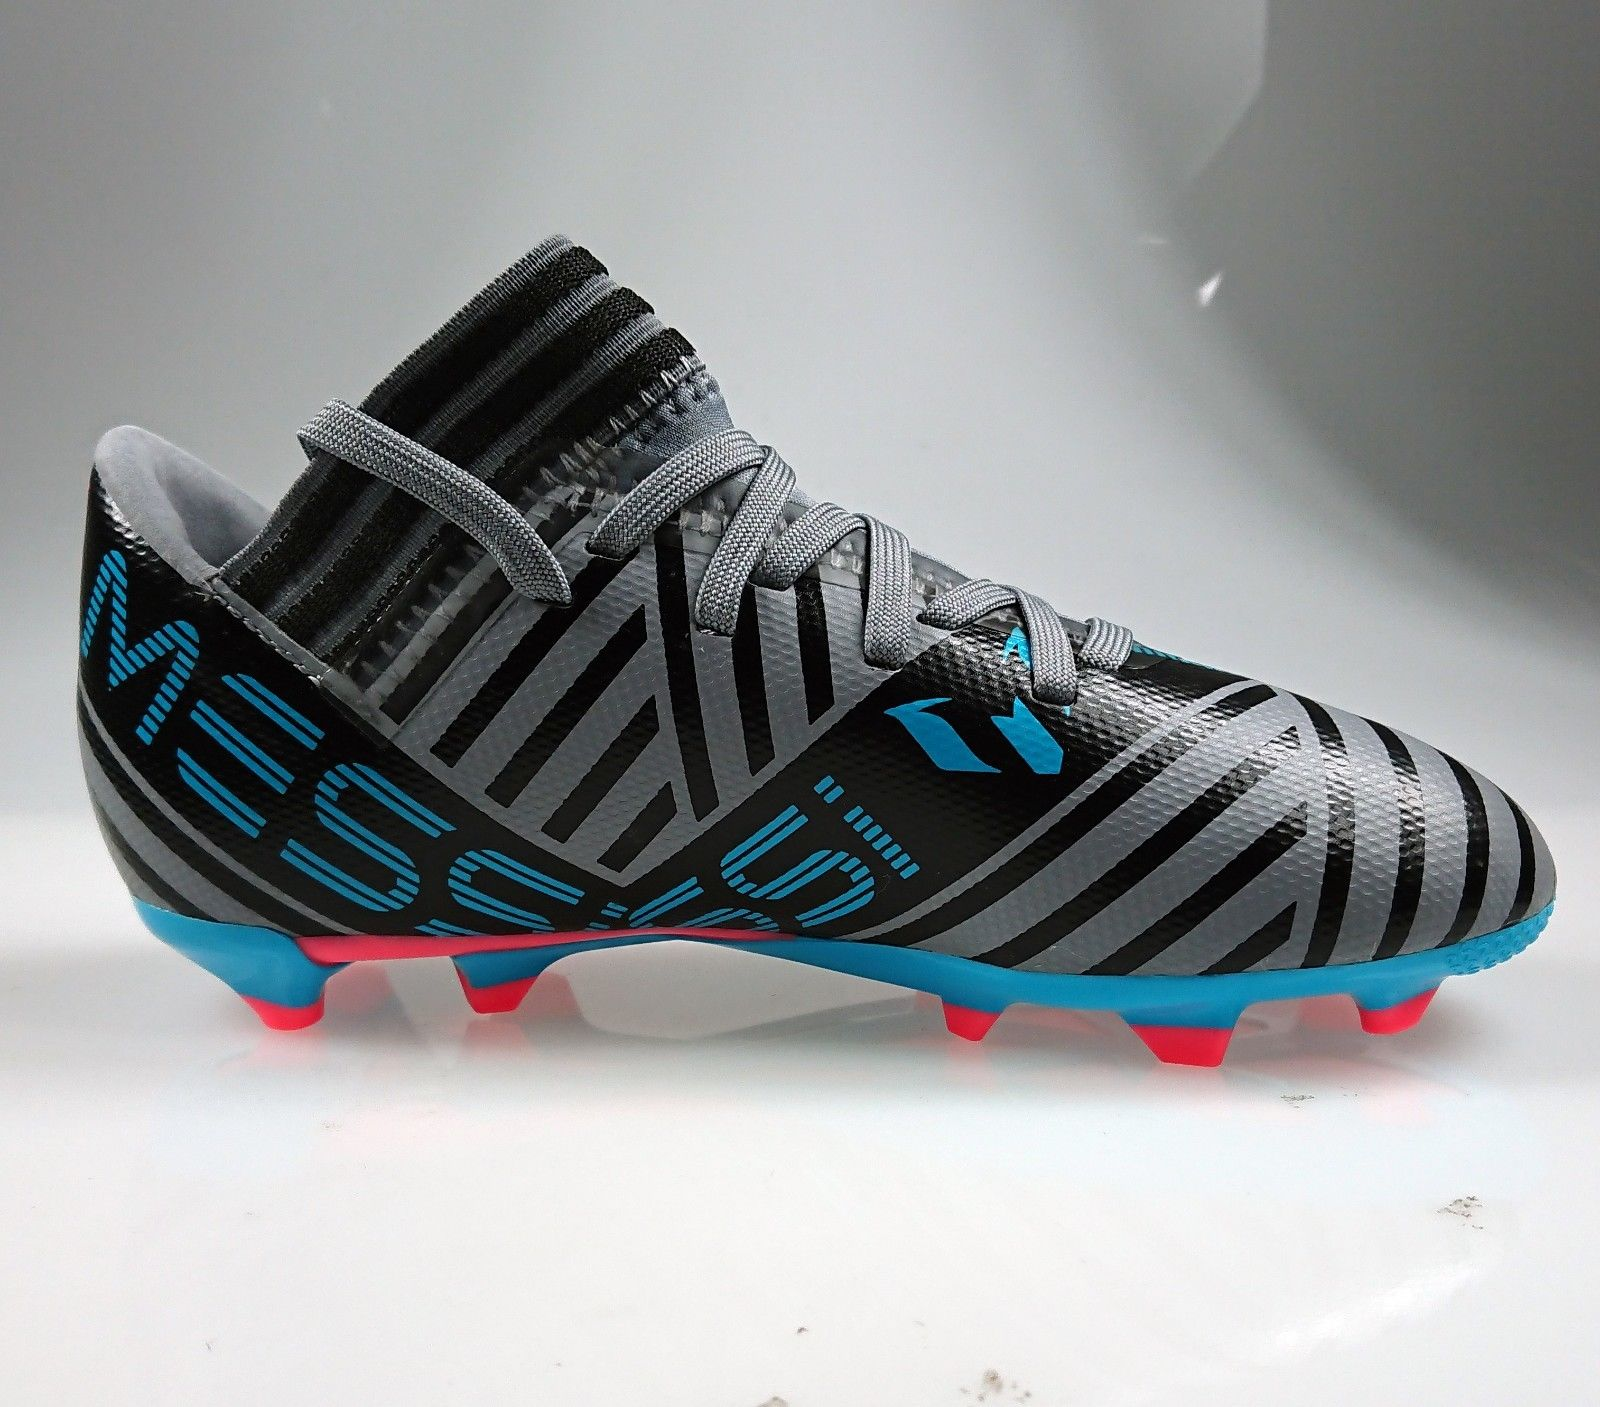 f9f126eeb6de ... Adidas Nemeziz Messi 17.3 FG Junior Grey Soccer Cleats ...